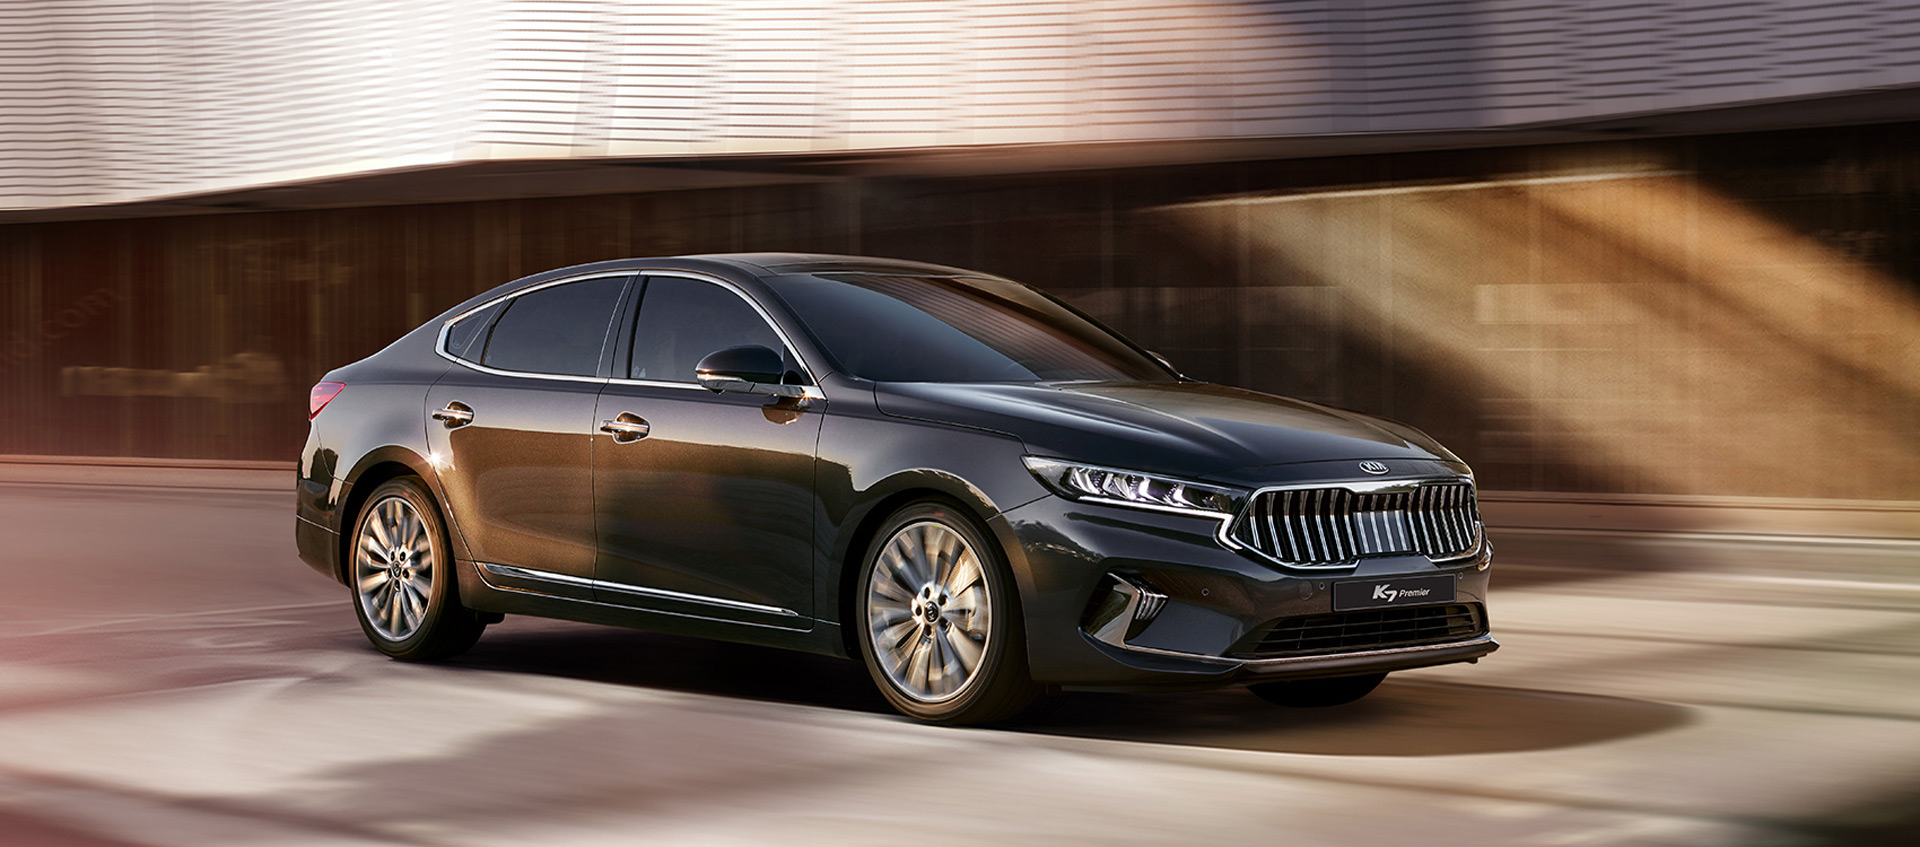 2020 Kia Cadenza To Get New Look Next Year - 2022 Kia Cadenza Usa Performance, Changes, Release Date